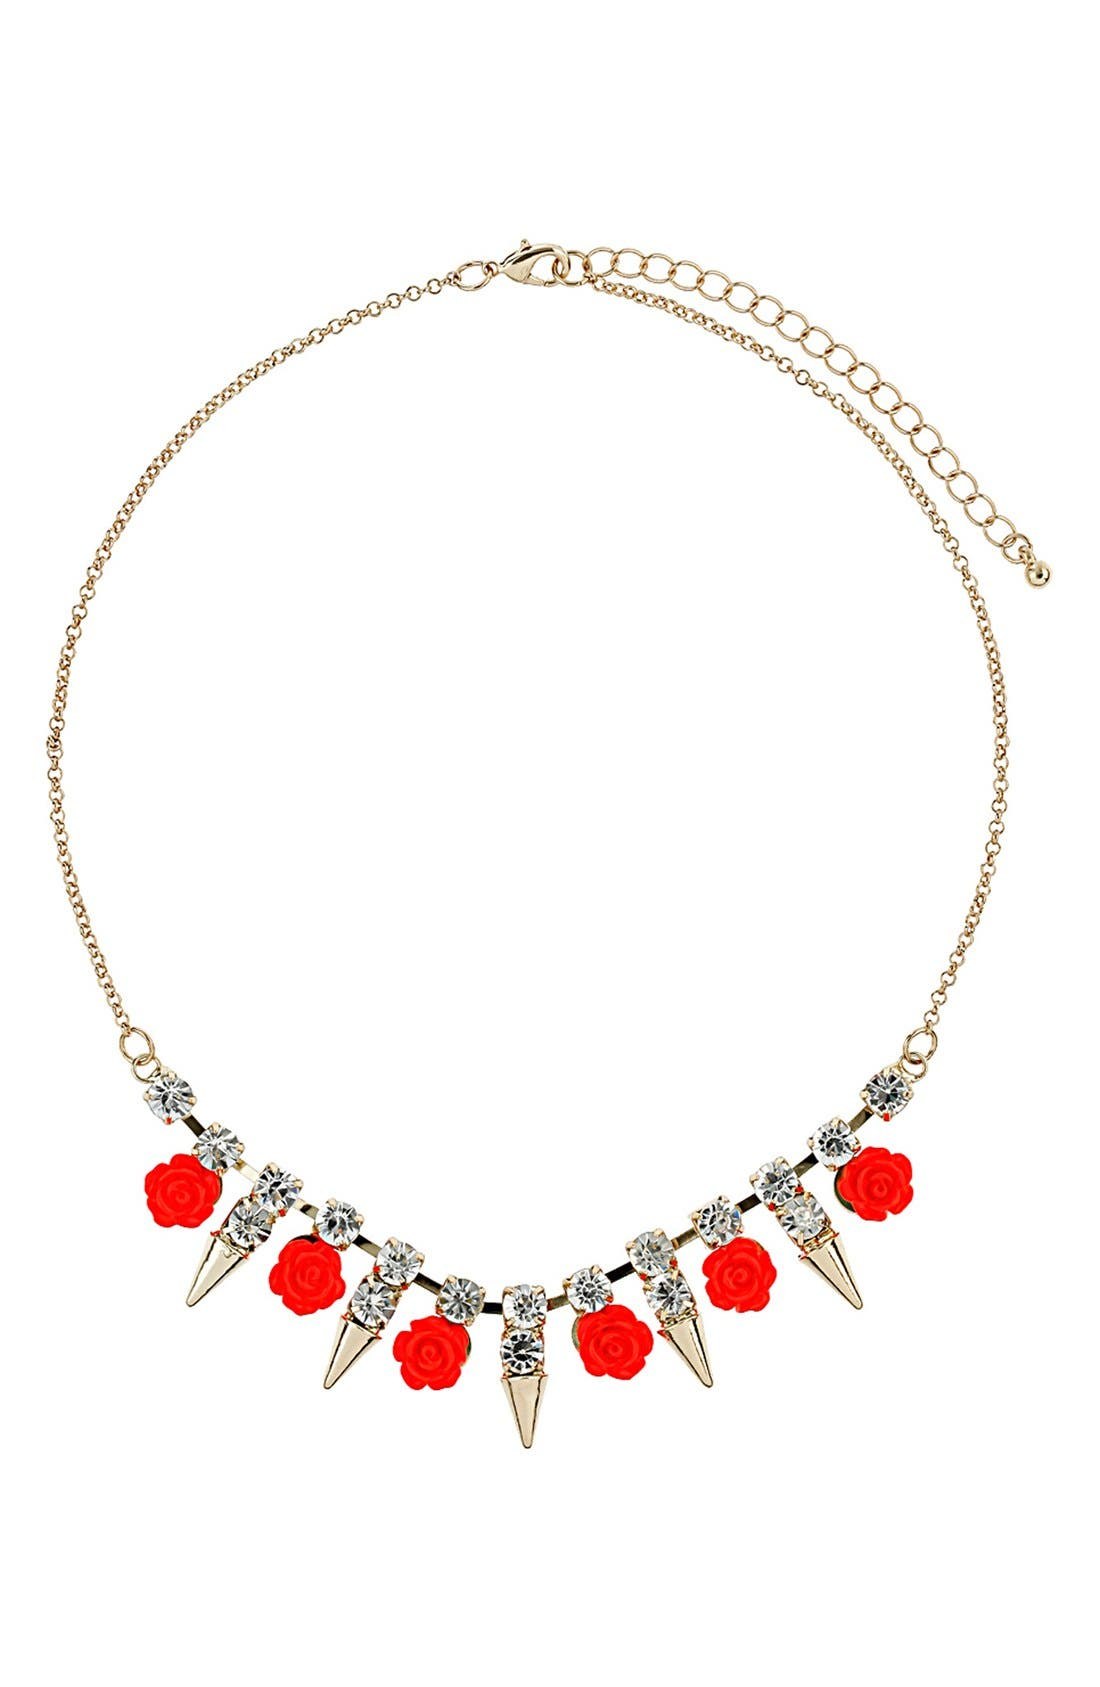 Main Image - Topshop 'Rose & Spike' Collar Necklace